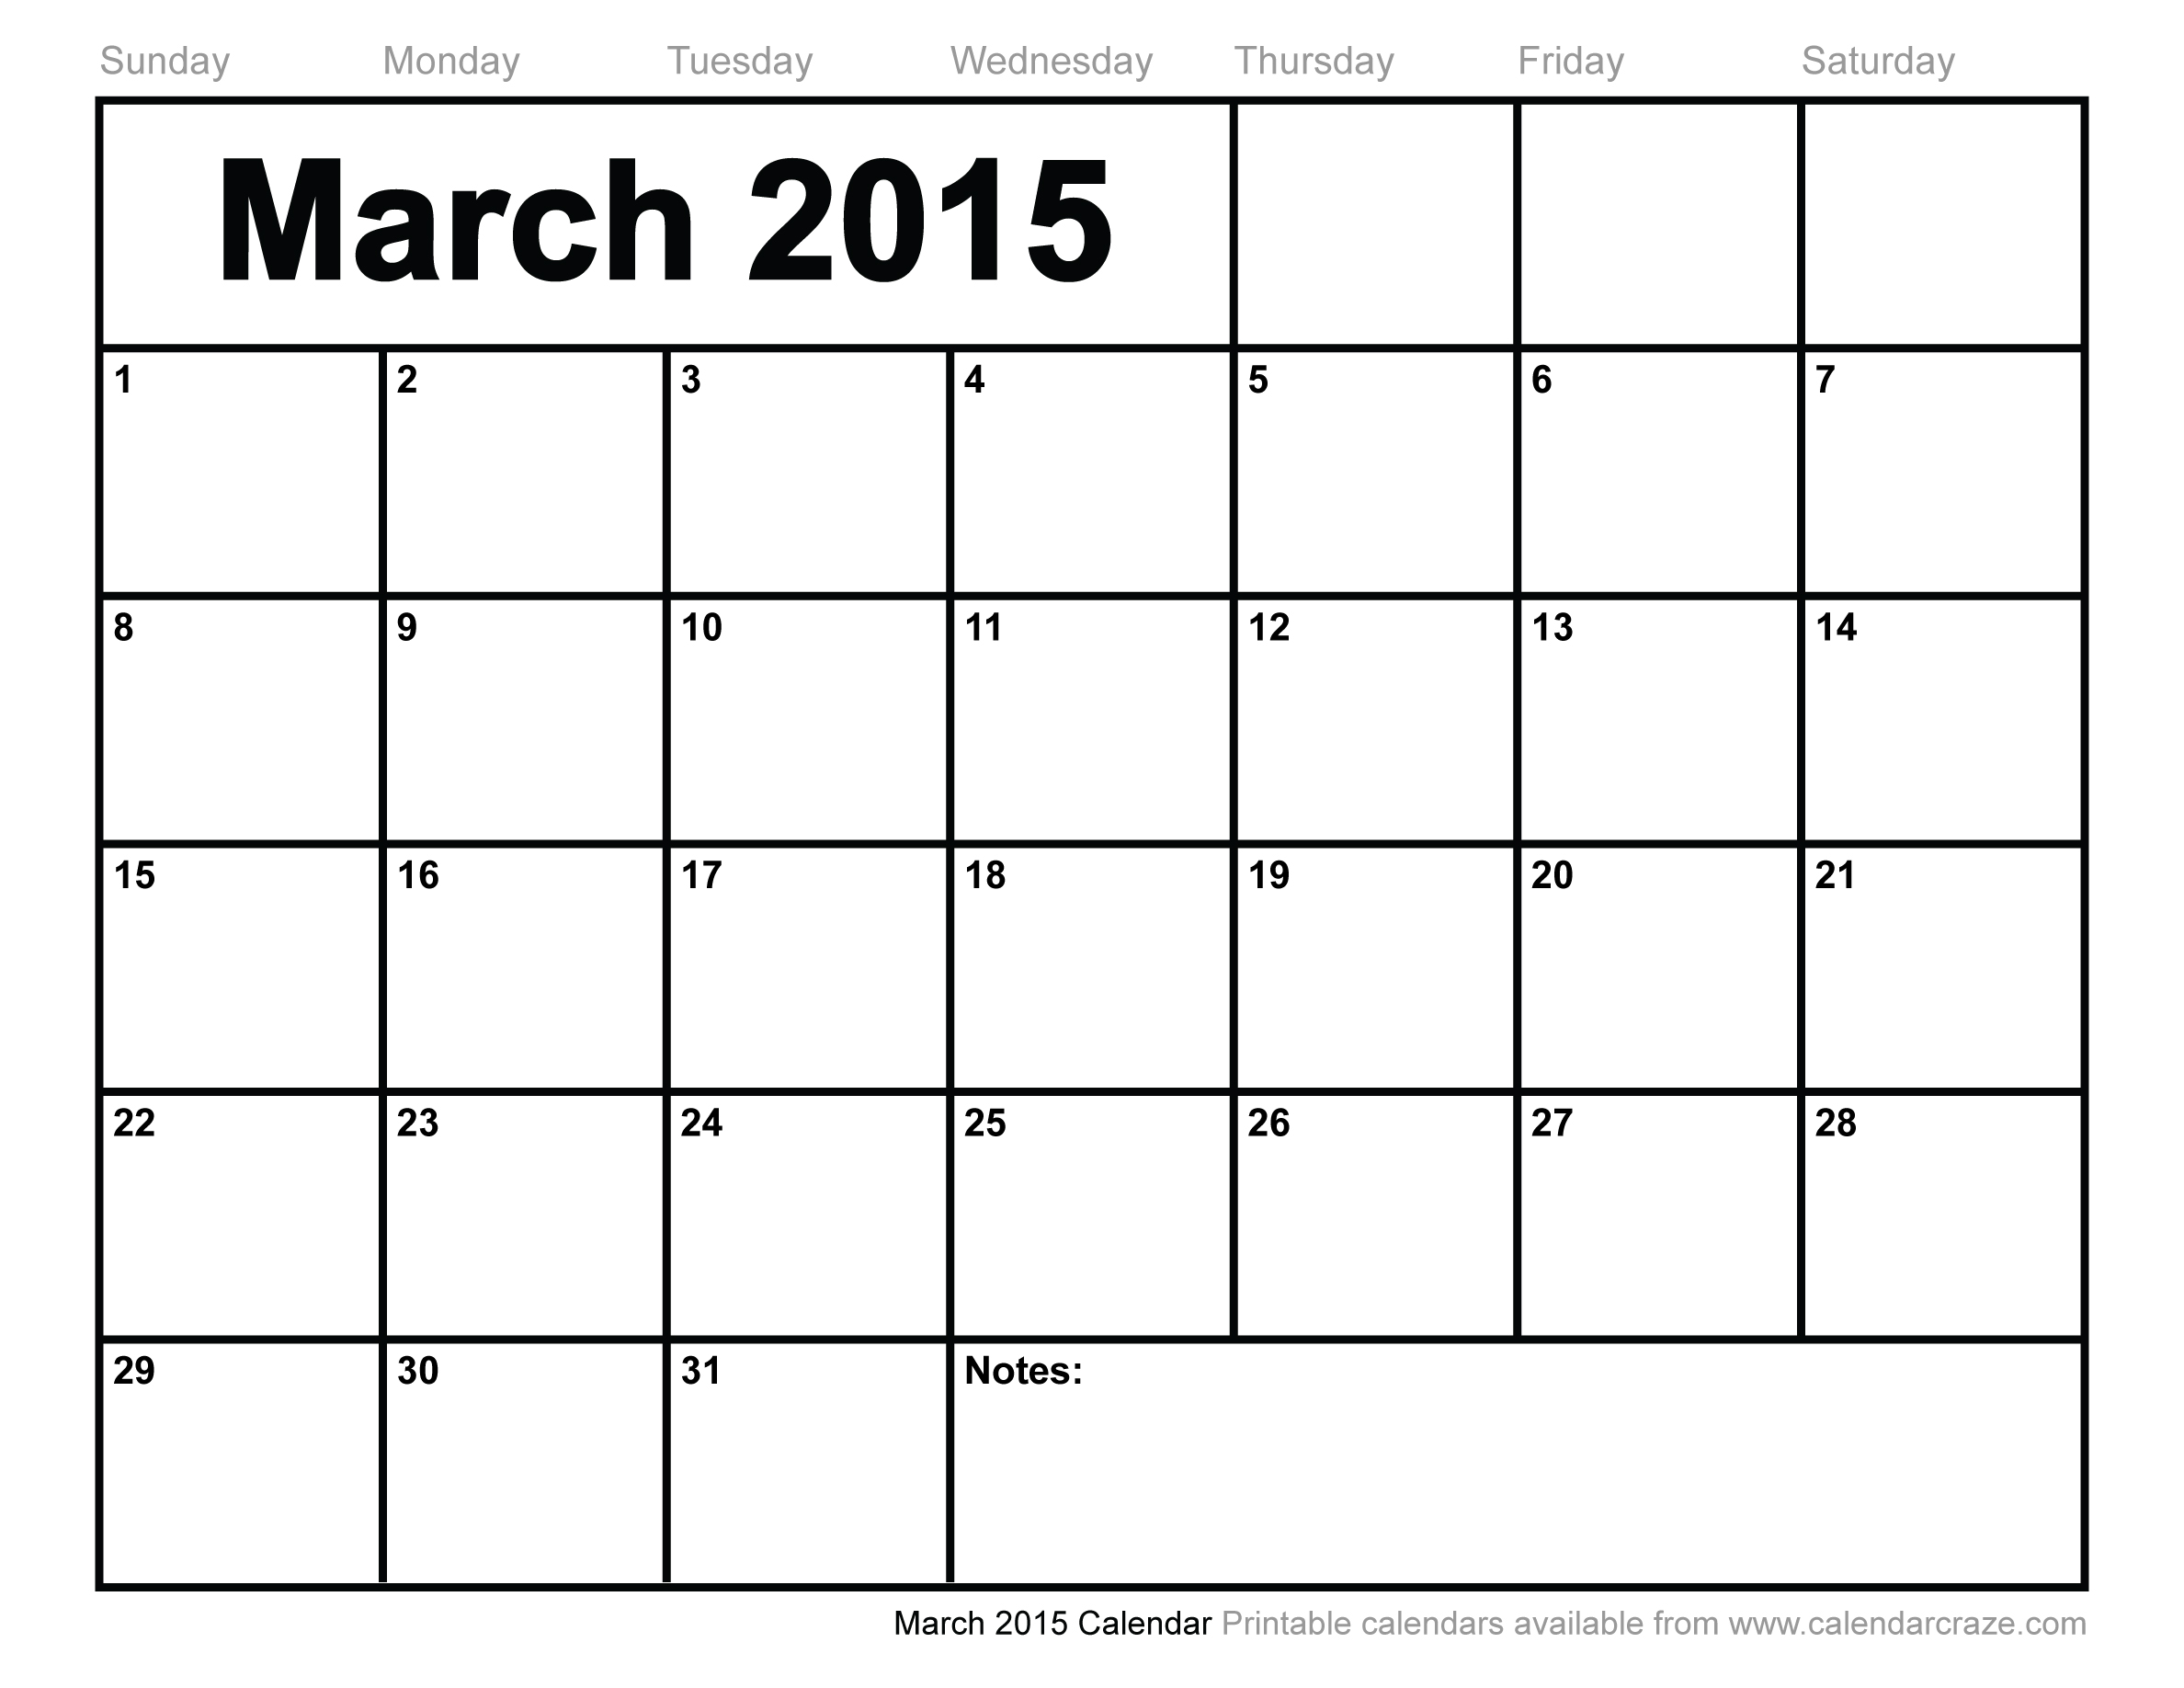 March church calendar clipart banner transparent download March calendar clipart black and white - ClipartFox banner transparent download